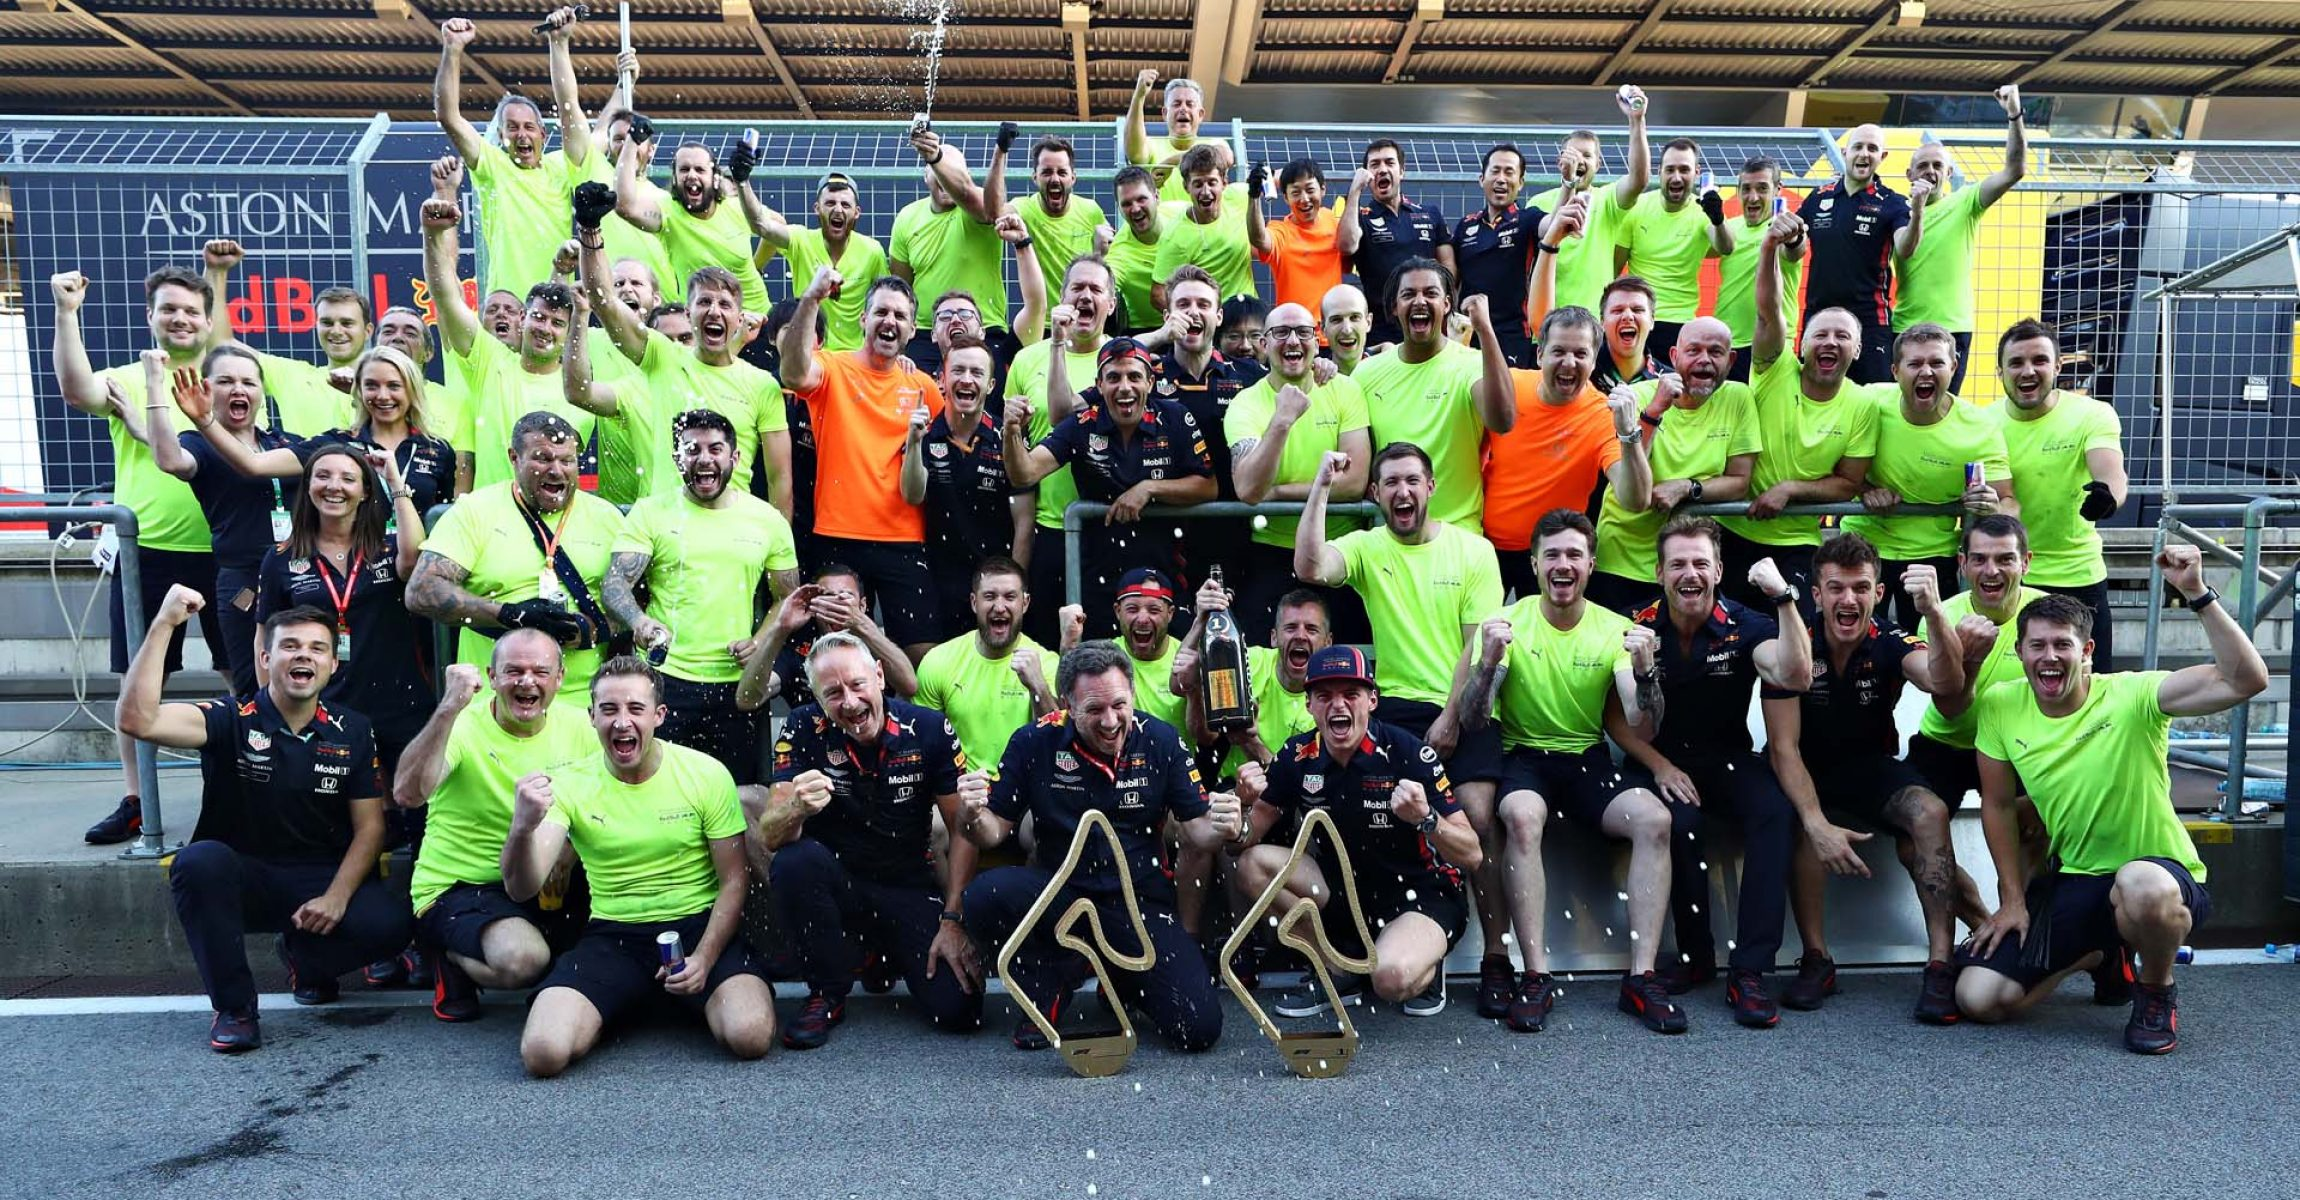 SPIELBERG, AUSTRIA - JUNE 30: Race winner Max Verstappen of Netherlands and Red Bull Racing and the Red Bull Racing team celebrate after the F1 Grand Prix of Austria at Red Bull Ring on June 30, 2019 in Spielberg, Austria. (Photo by Mark Thompson/Getty Images) // Getty Images / Red Bull Content Pool // AP-1ZTB2VFJ52111 // Usage for editorial use only // Please go to www.redbullcontentpool.com for further information. //